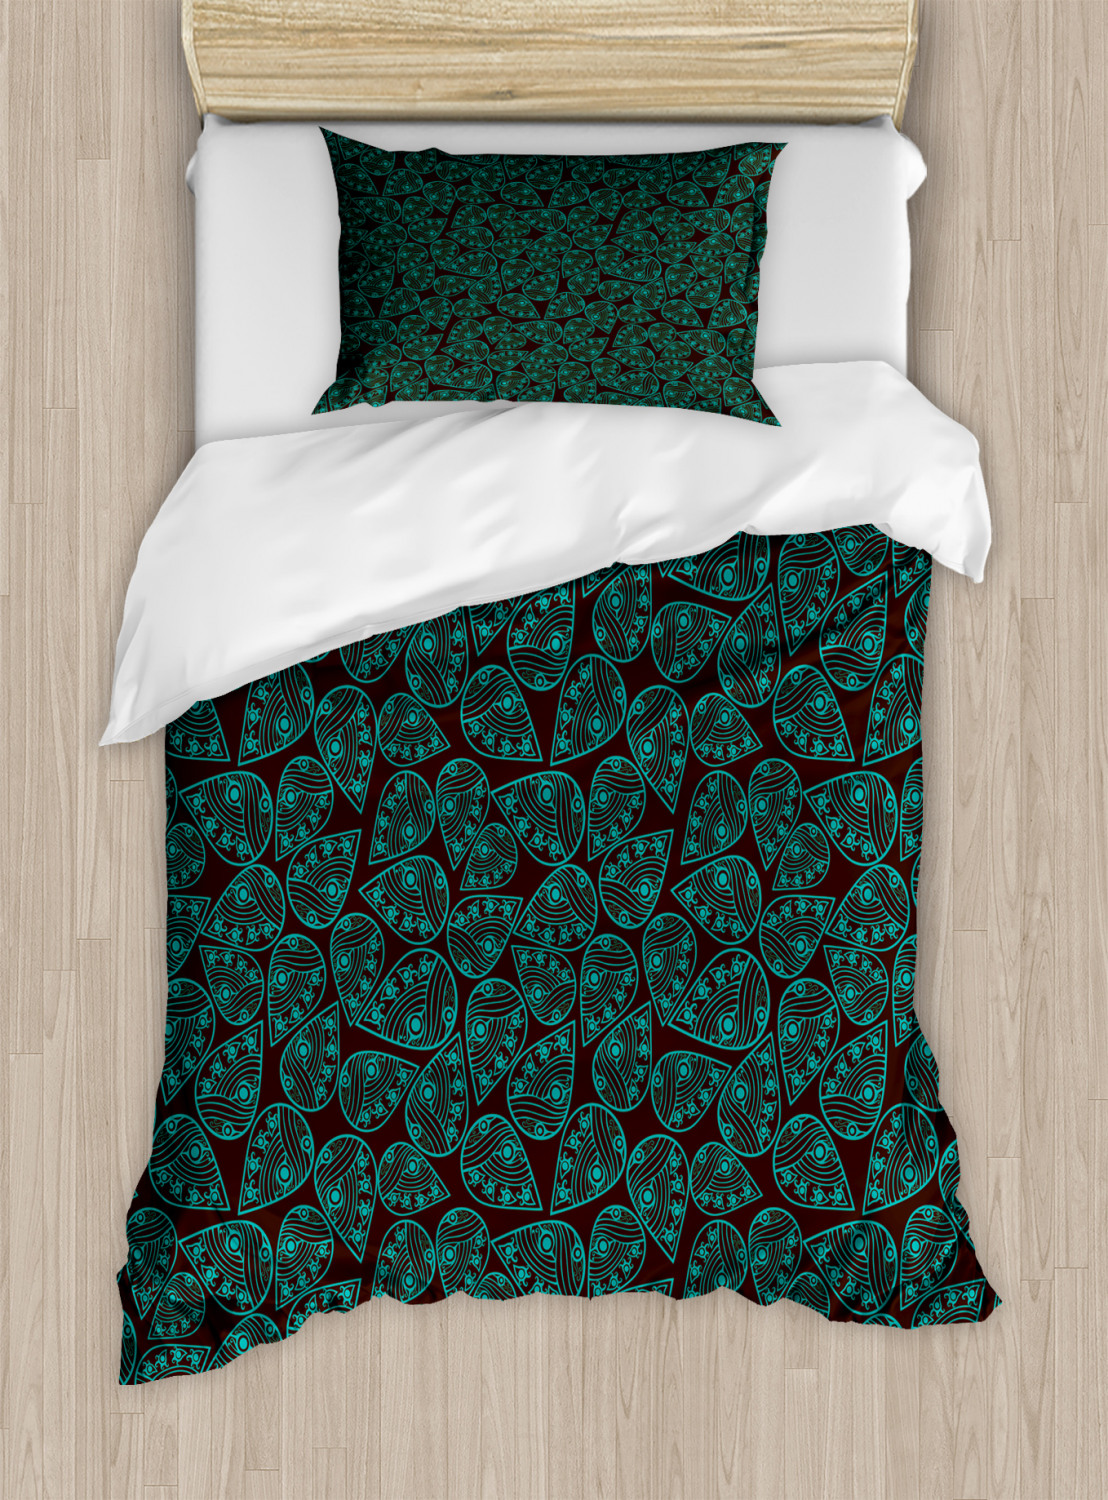 Timeless-Oriental-Duvet-Cover-Set-Twin-Queen-King-Sizes-with-Pillow-Shams thumbnail 19